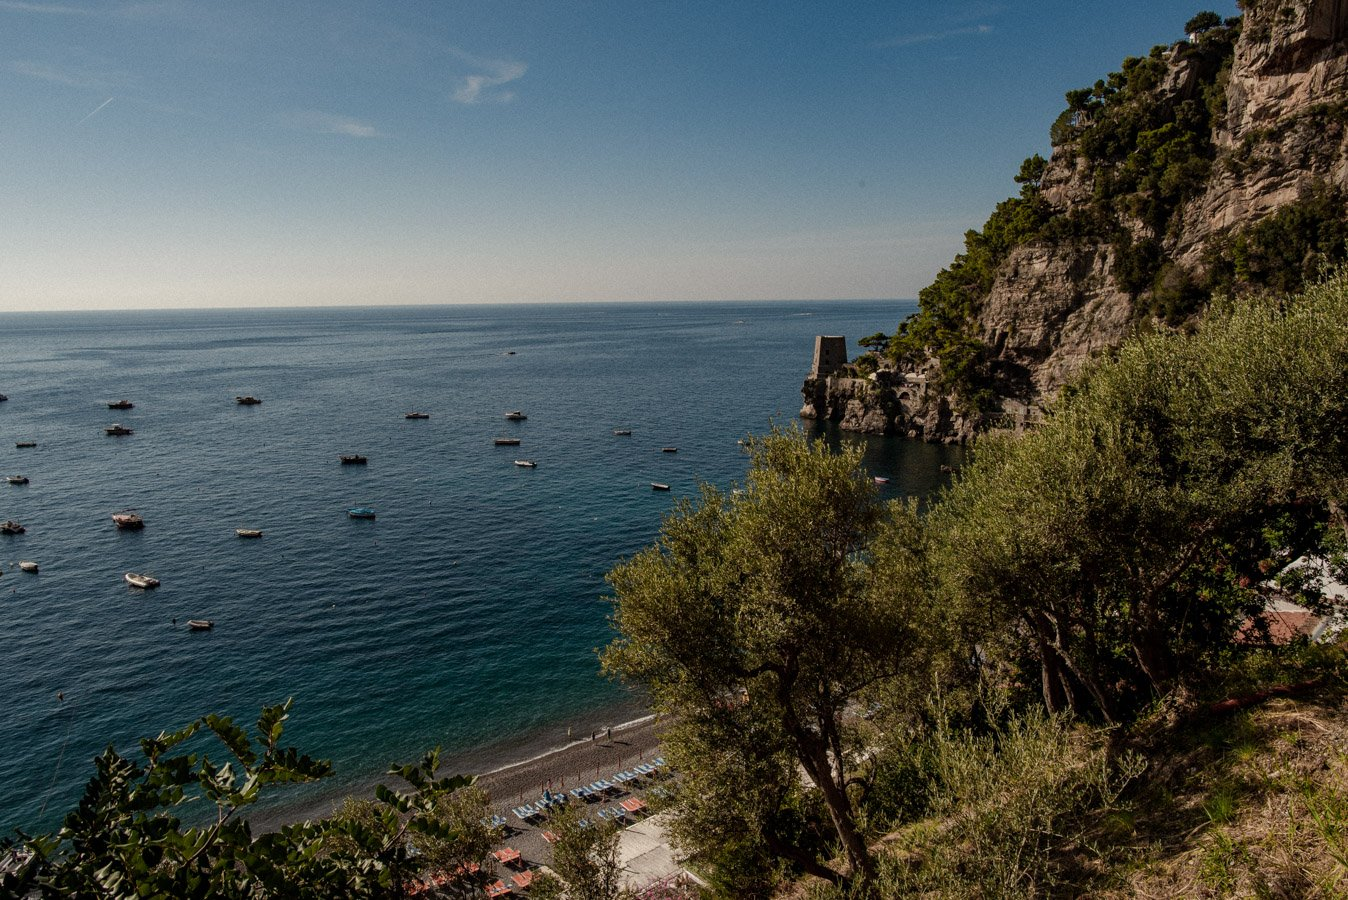 Learn where to stay and what to do in Positano. It's a great place to visit with many fun things to do.